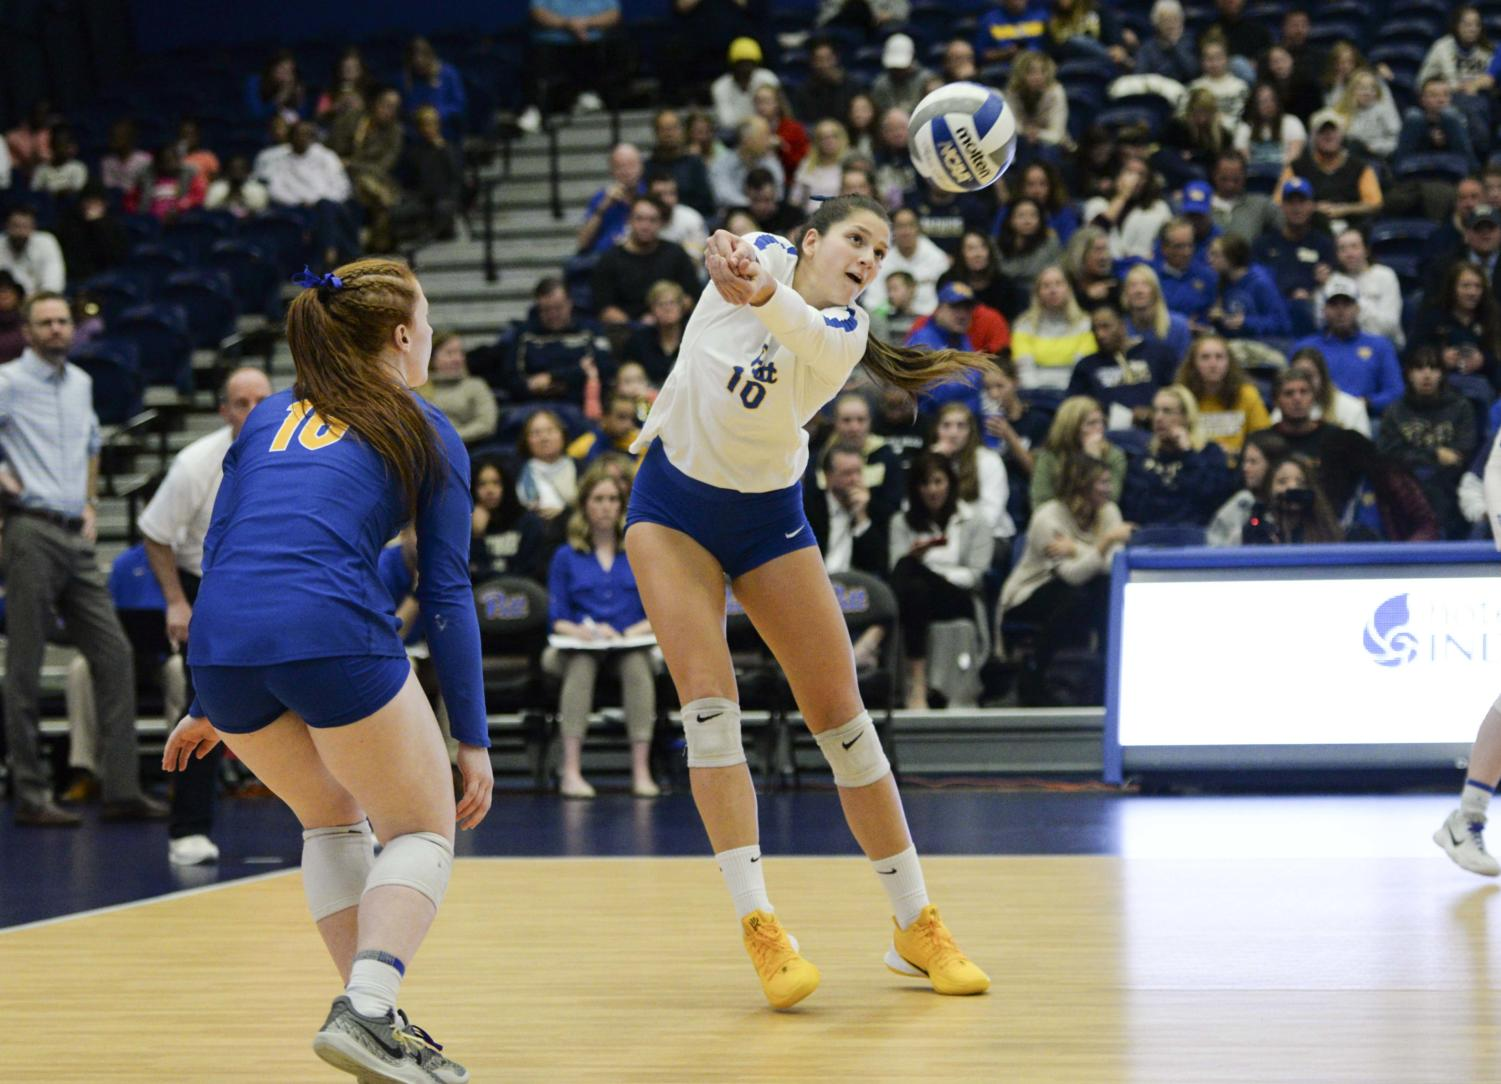 Zoi Faki (10) returns the ball. Pitt volleyball swept Duke on Sunday and earned its best ACC start ever.